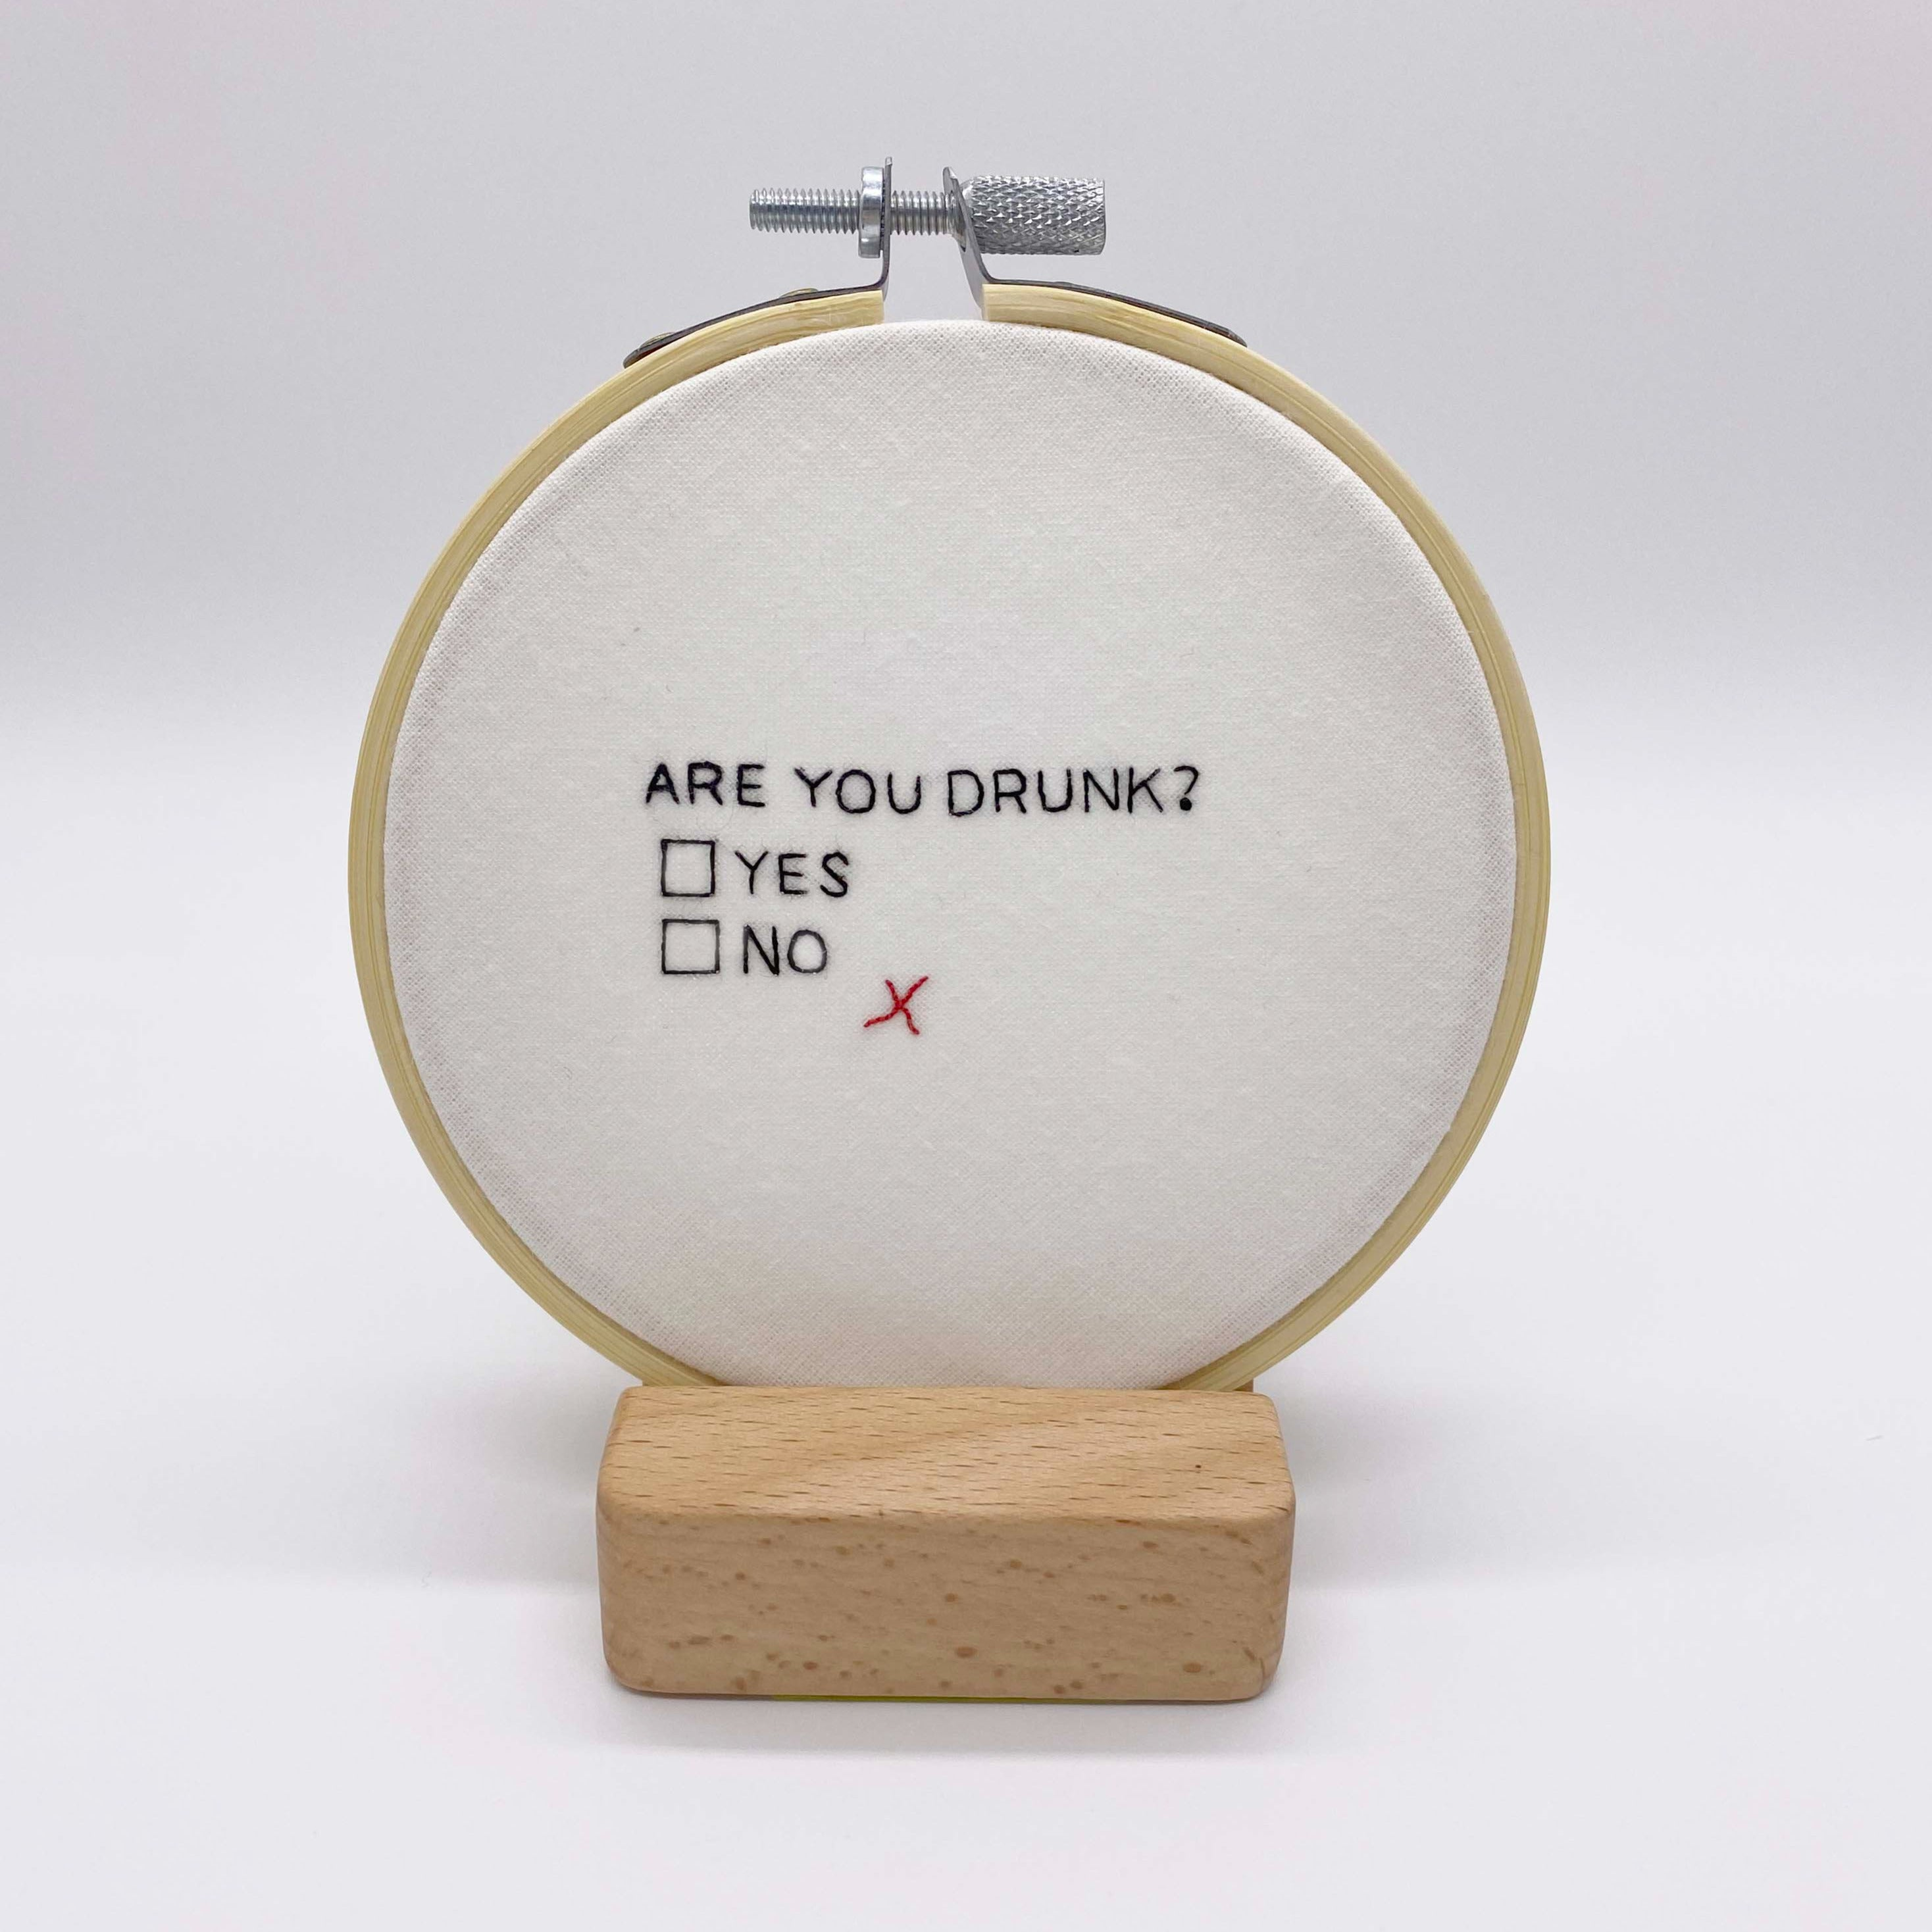 Drunk Embroidered Hoop